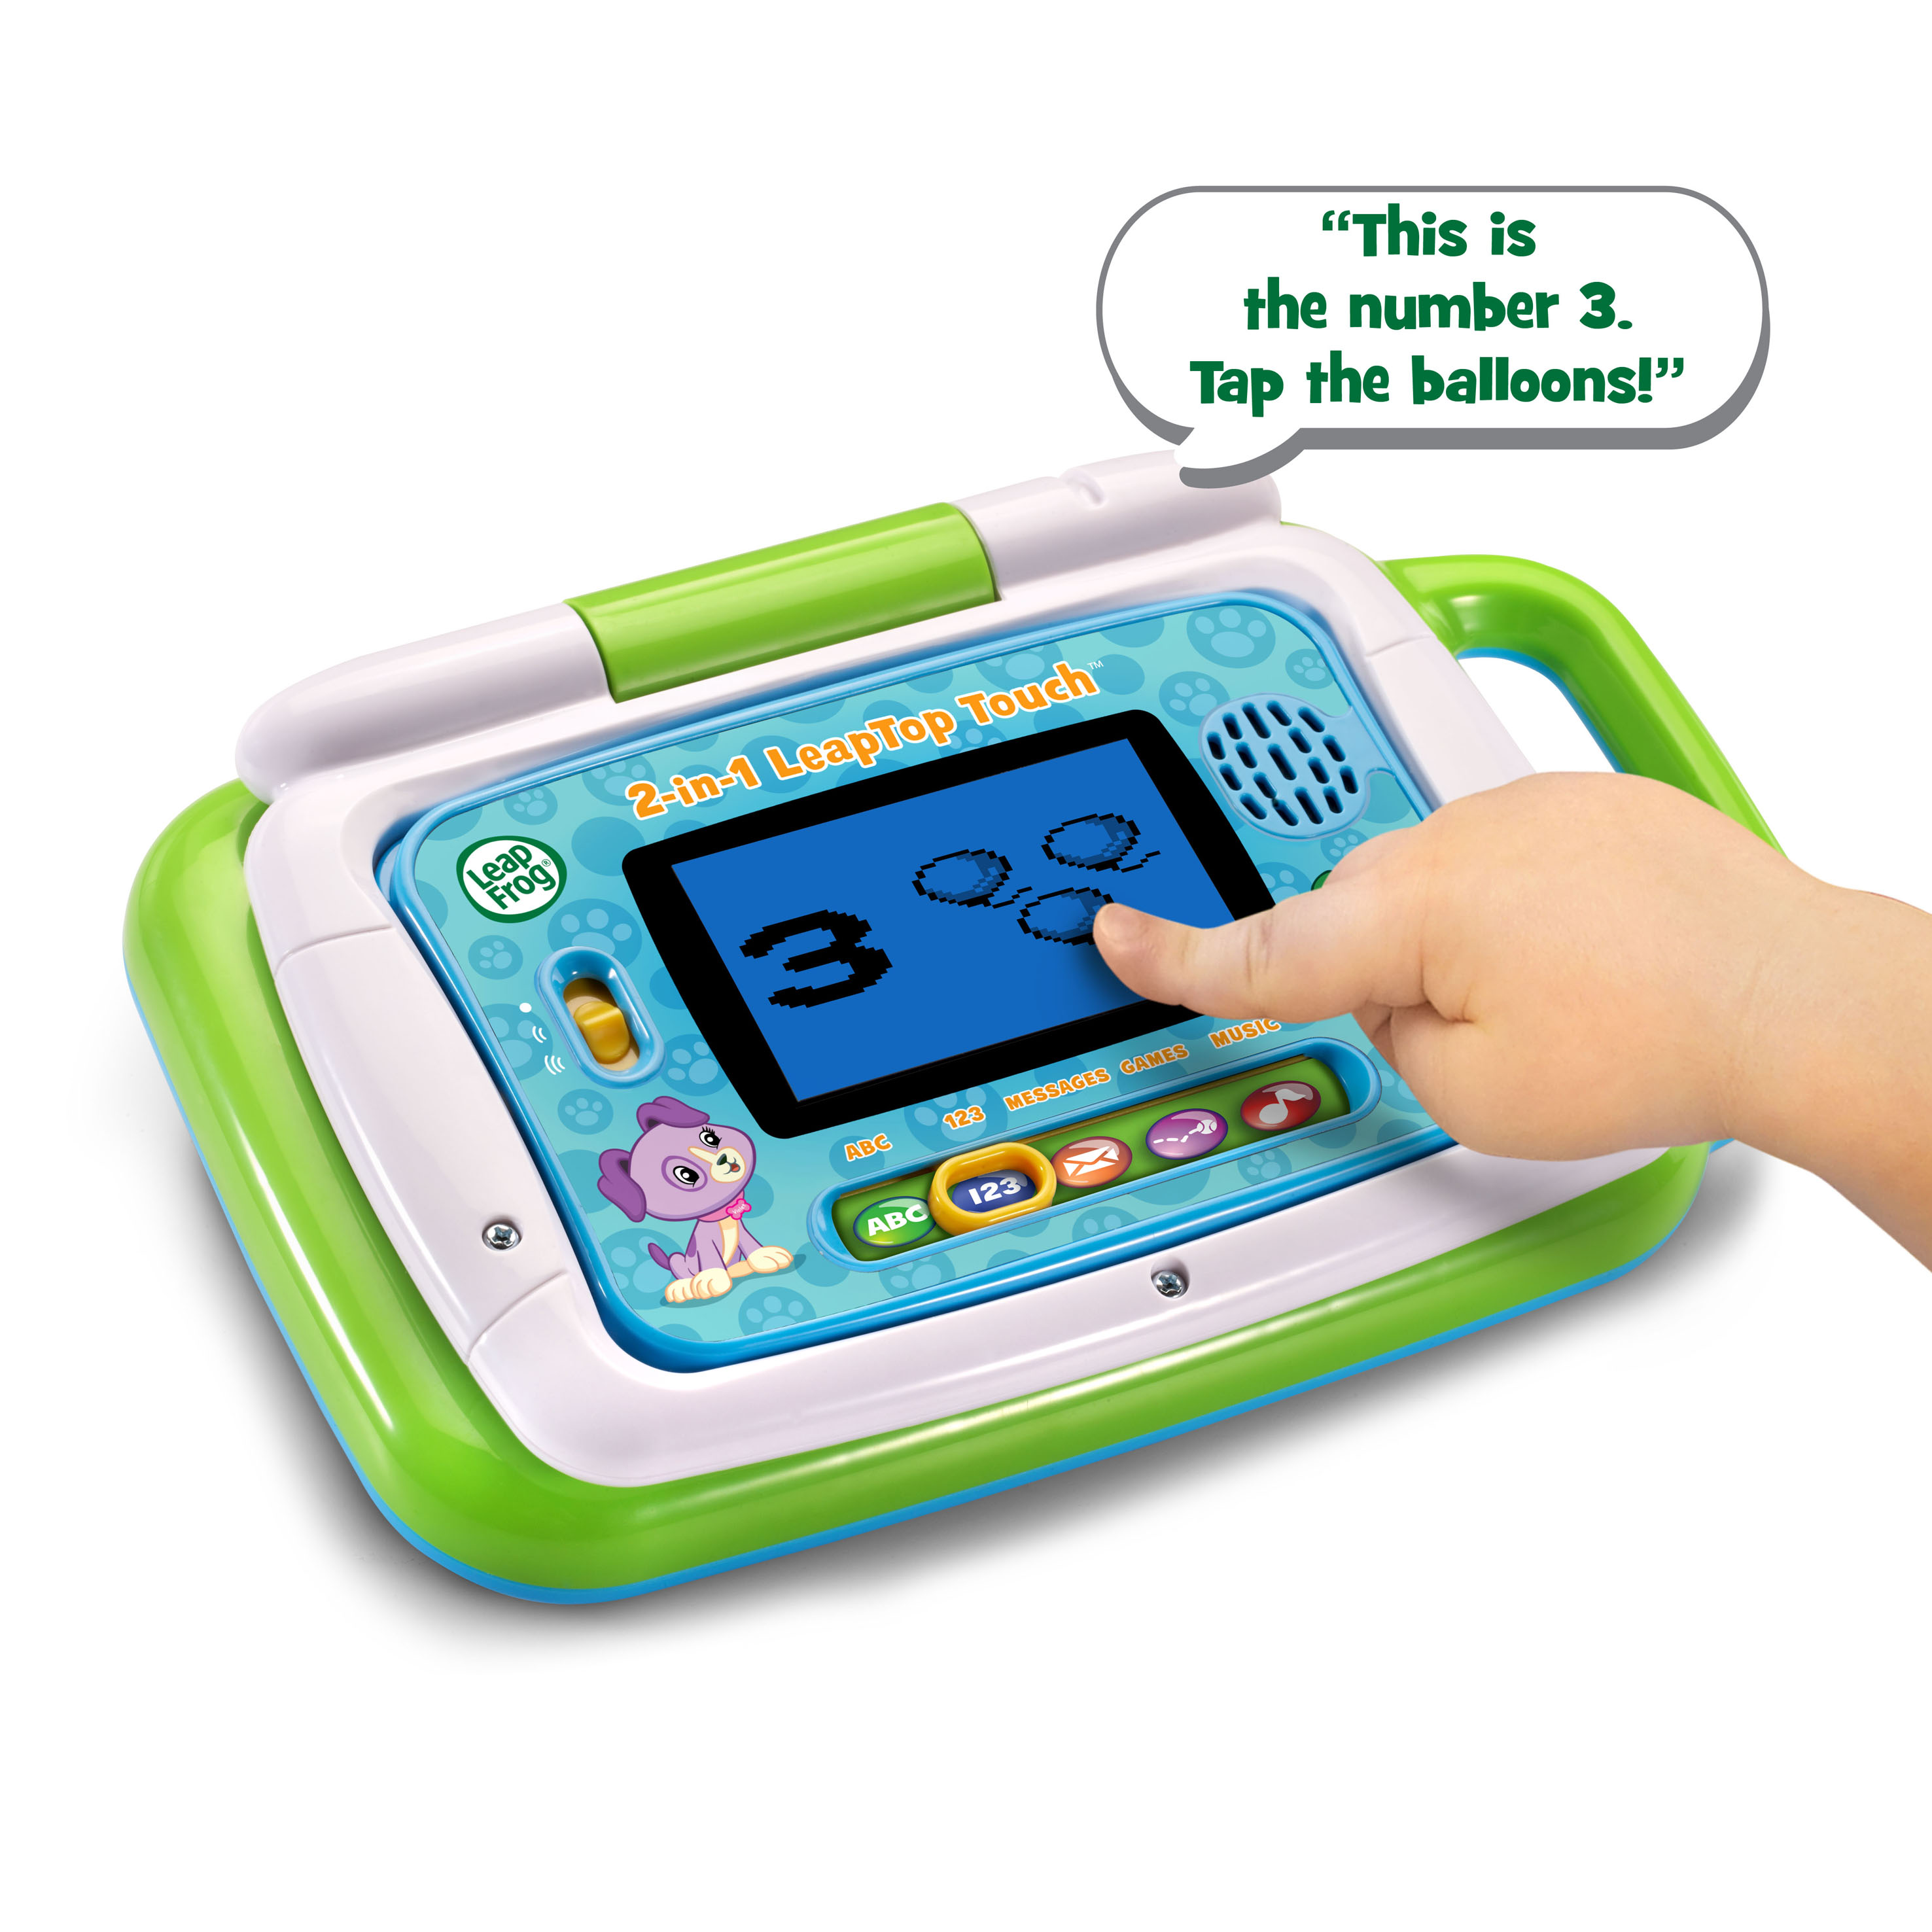 (LF) 2-in-1 LeapTop Touch